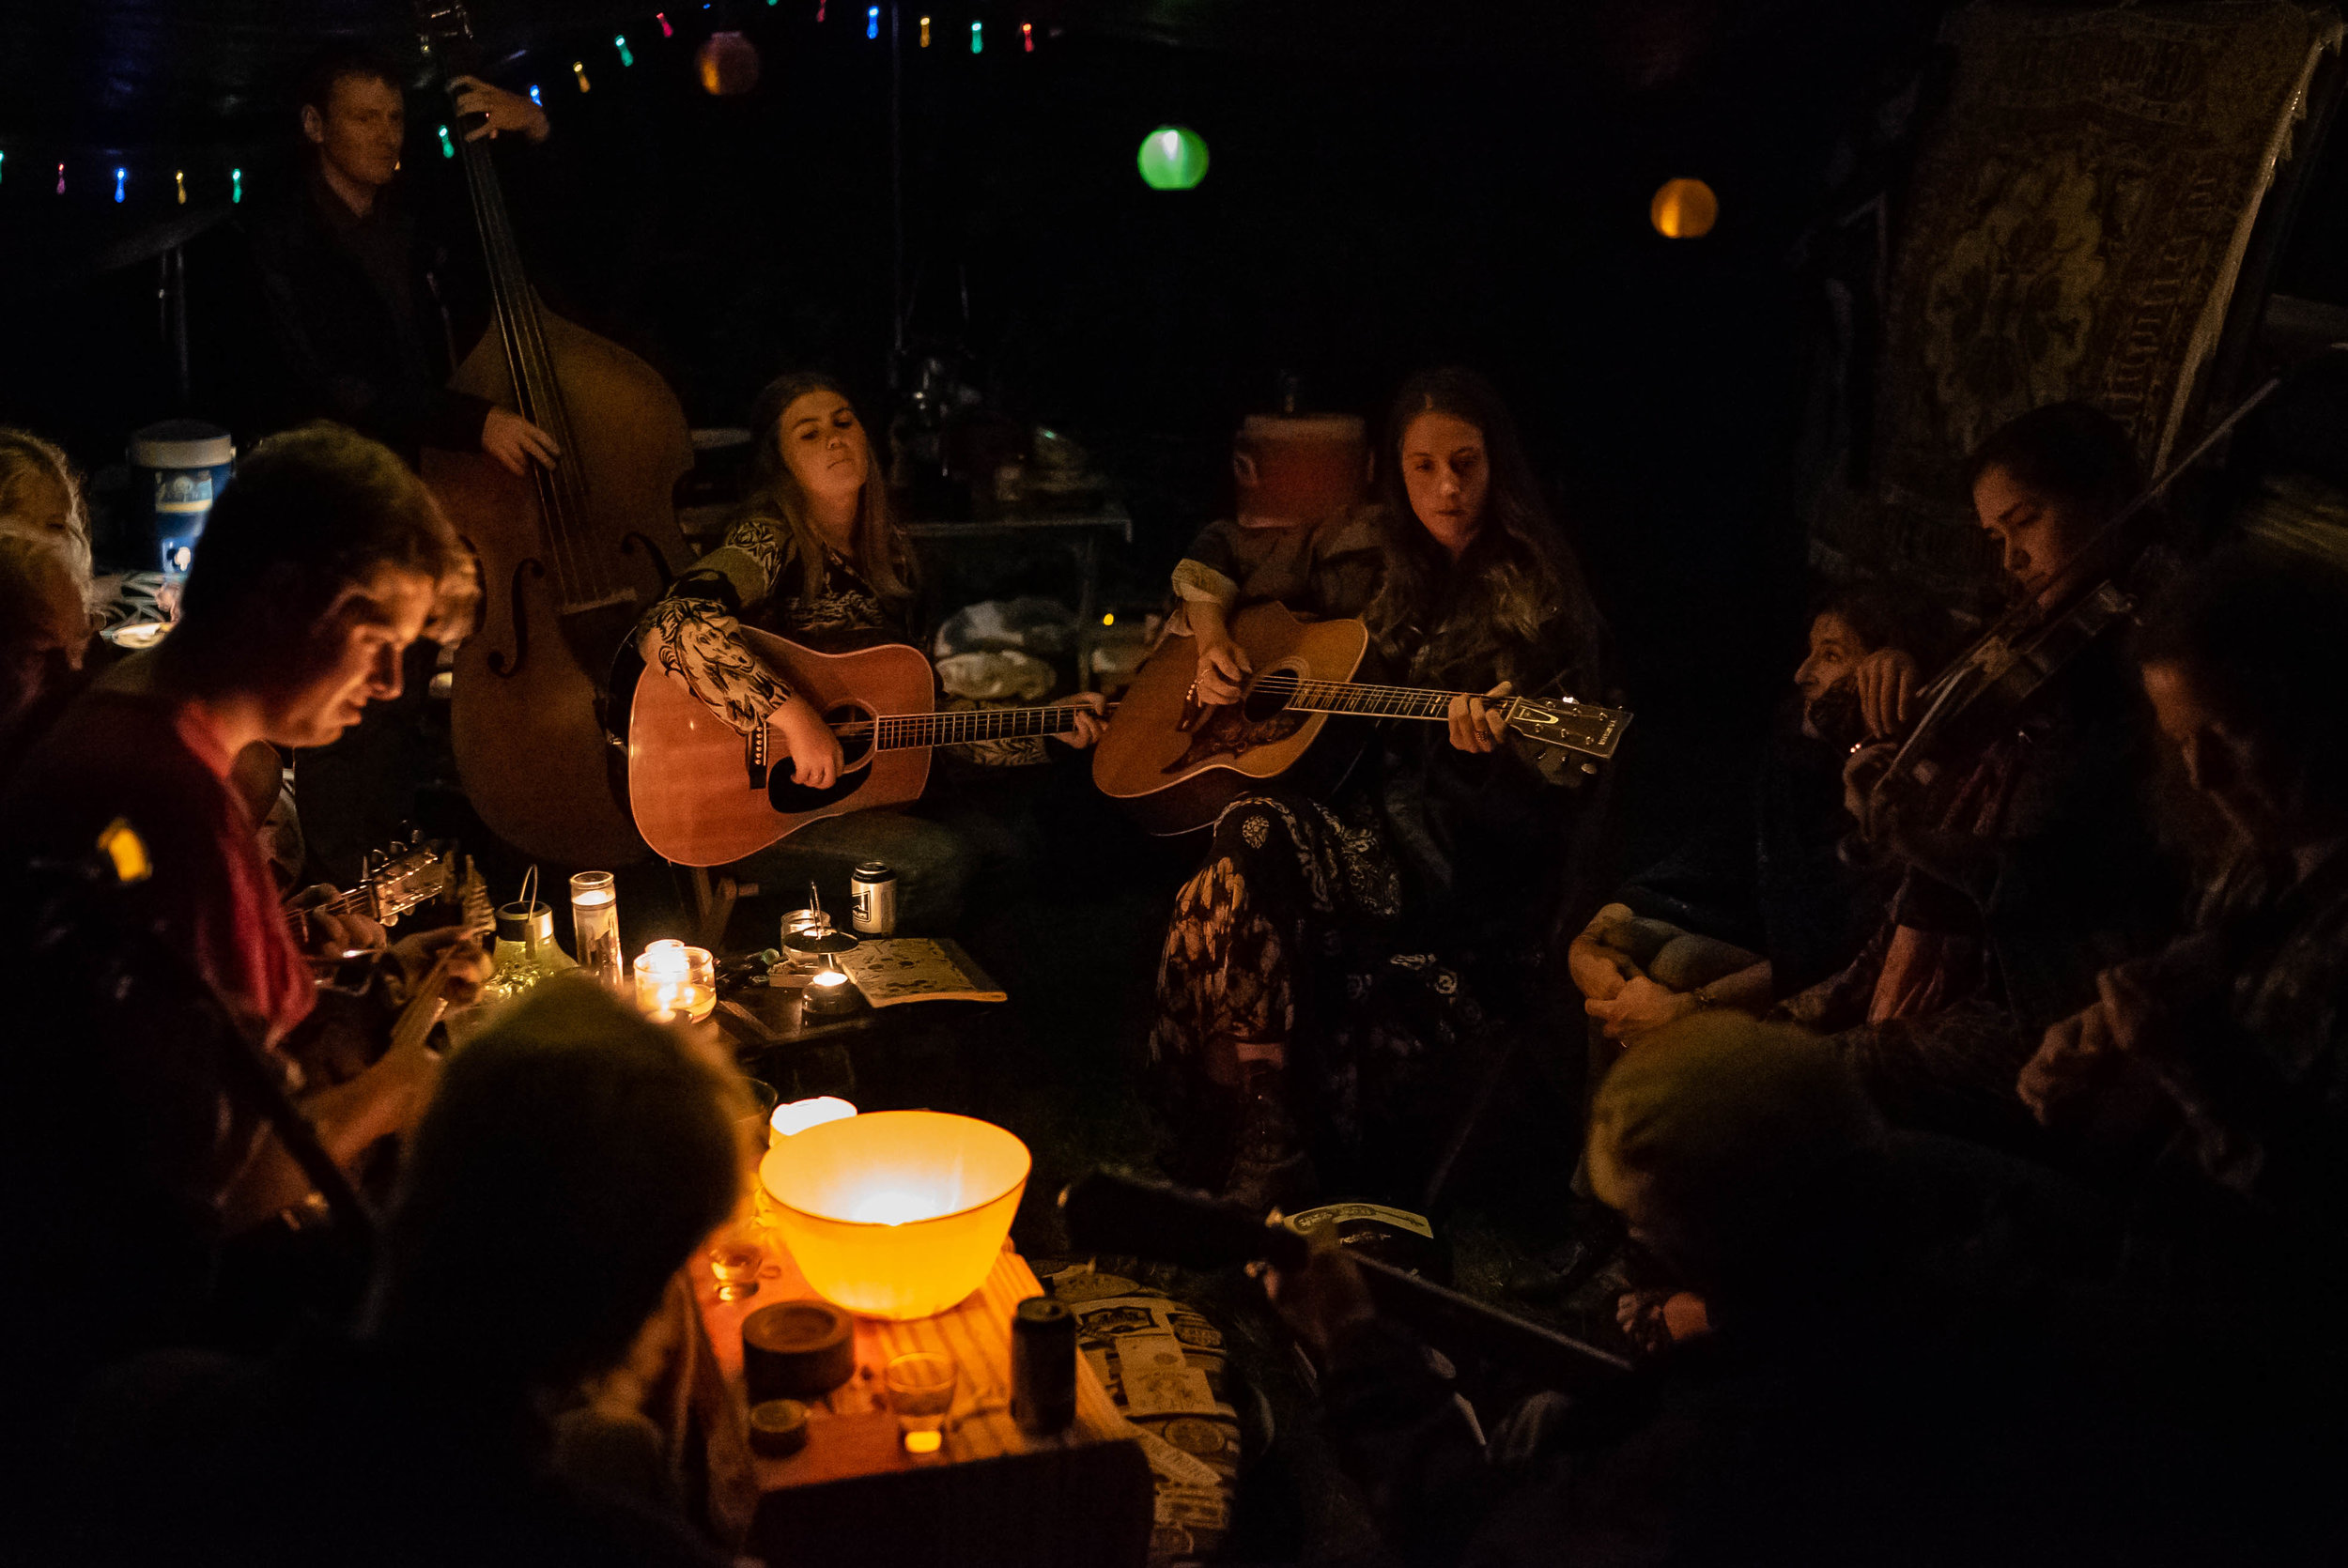 A 2am jam in the on-site camping area at Rocky Grass.